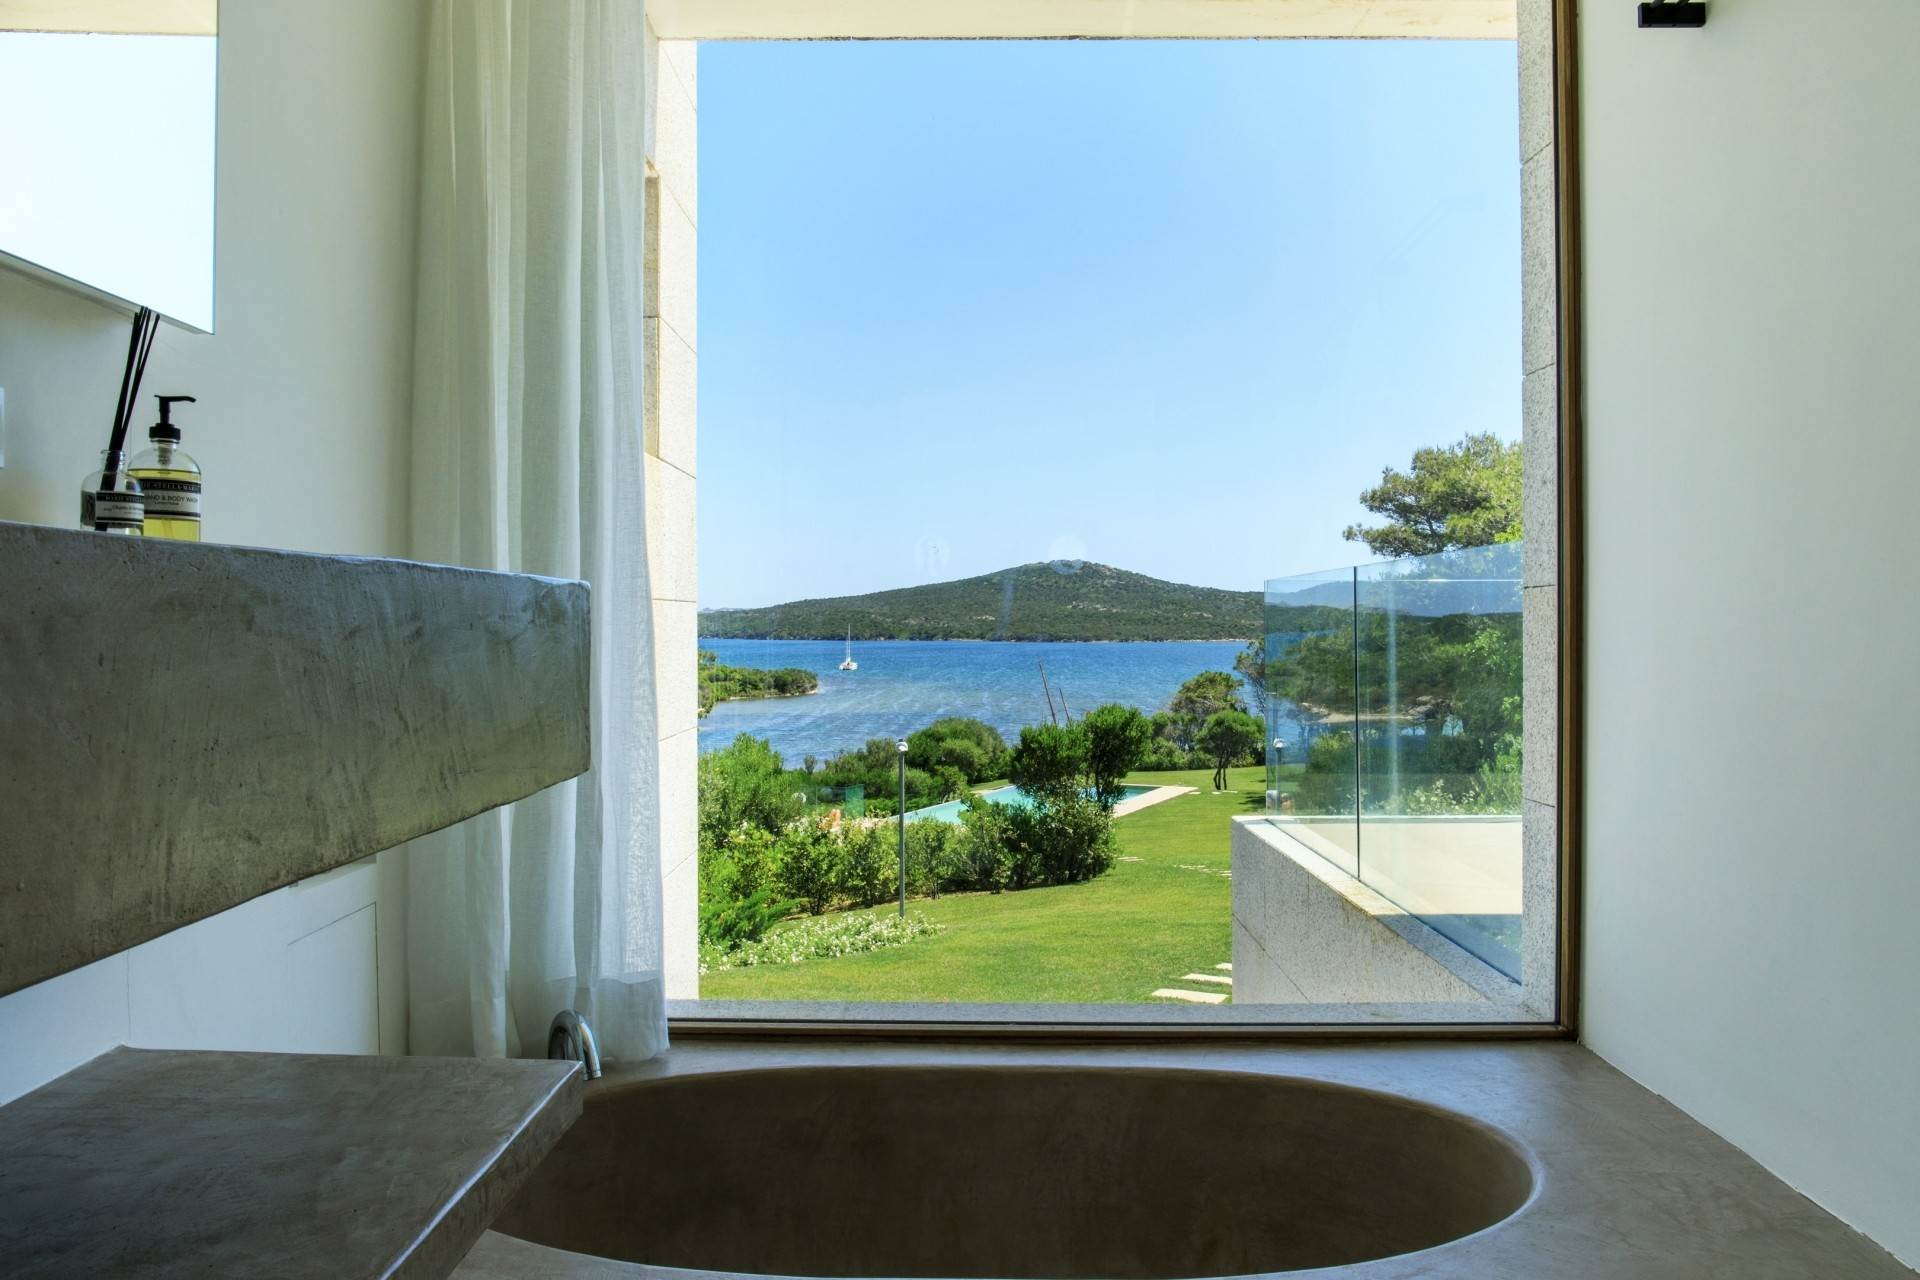 17. Villa/Townhouse for Sale at Waterfront Villa La Coluccia Costa Smeralda, Olbia Tempio,07020 Italy